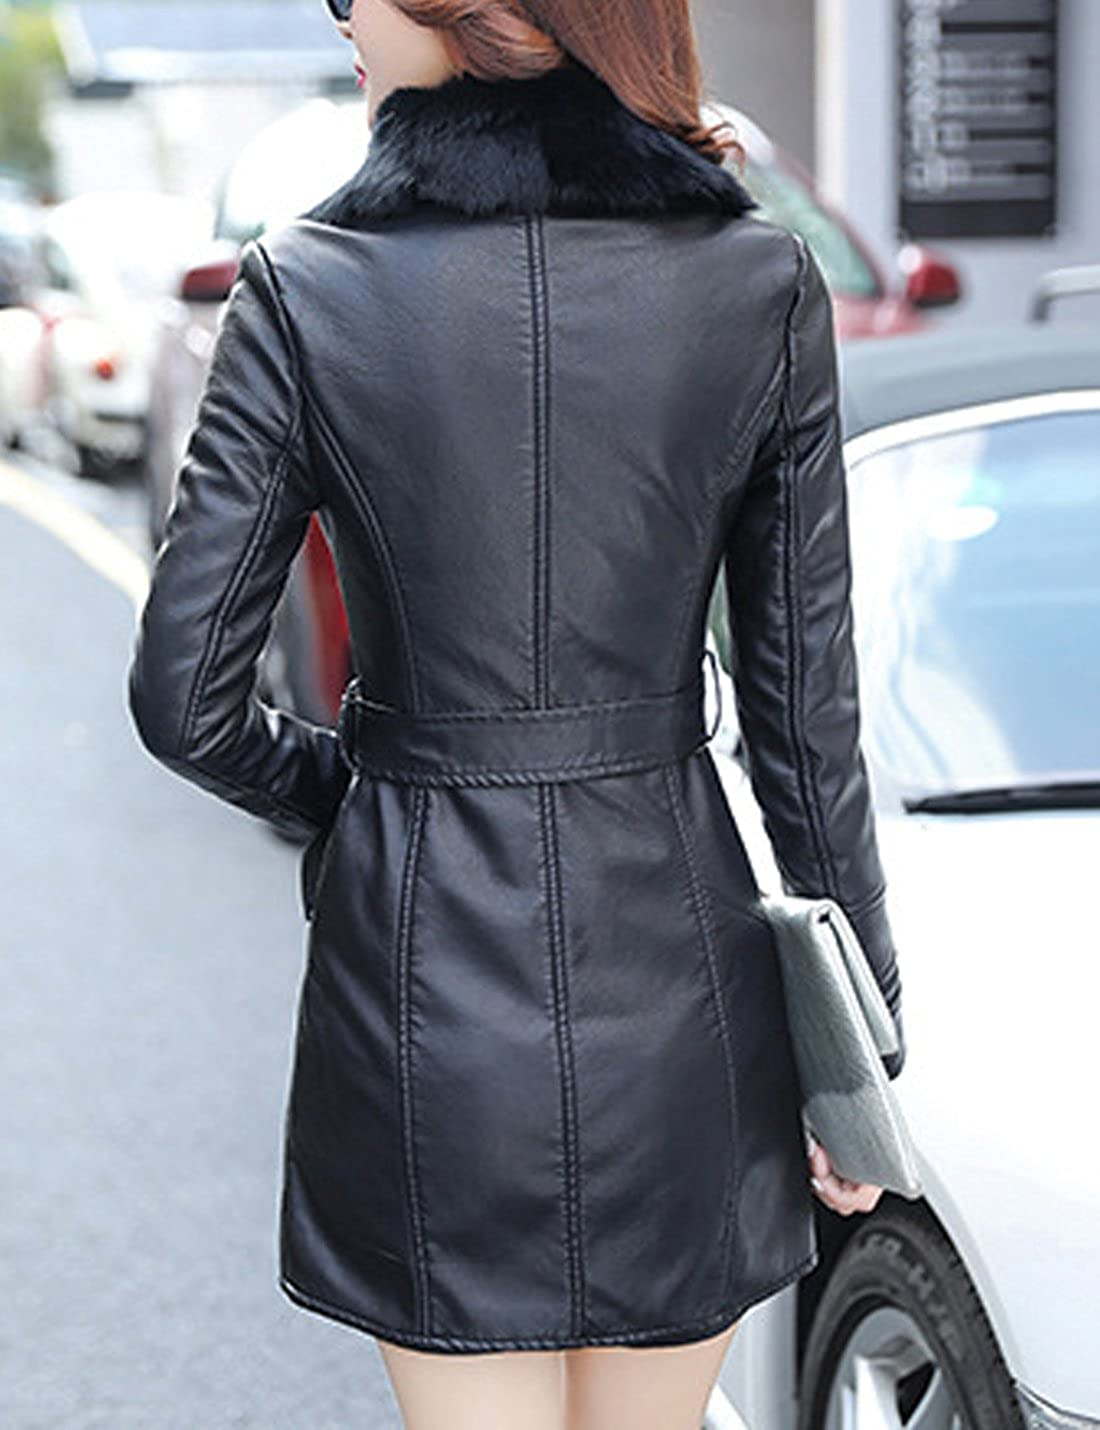 Tanming Womens Winter Warm Fur Collar Sherpa Lined Faux Leather Parka Coat Jacket